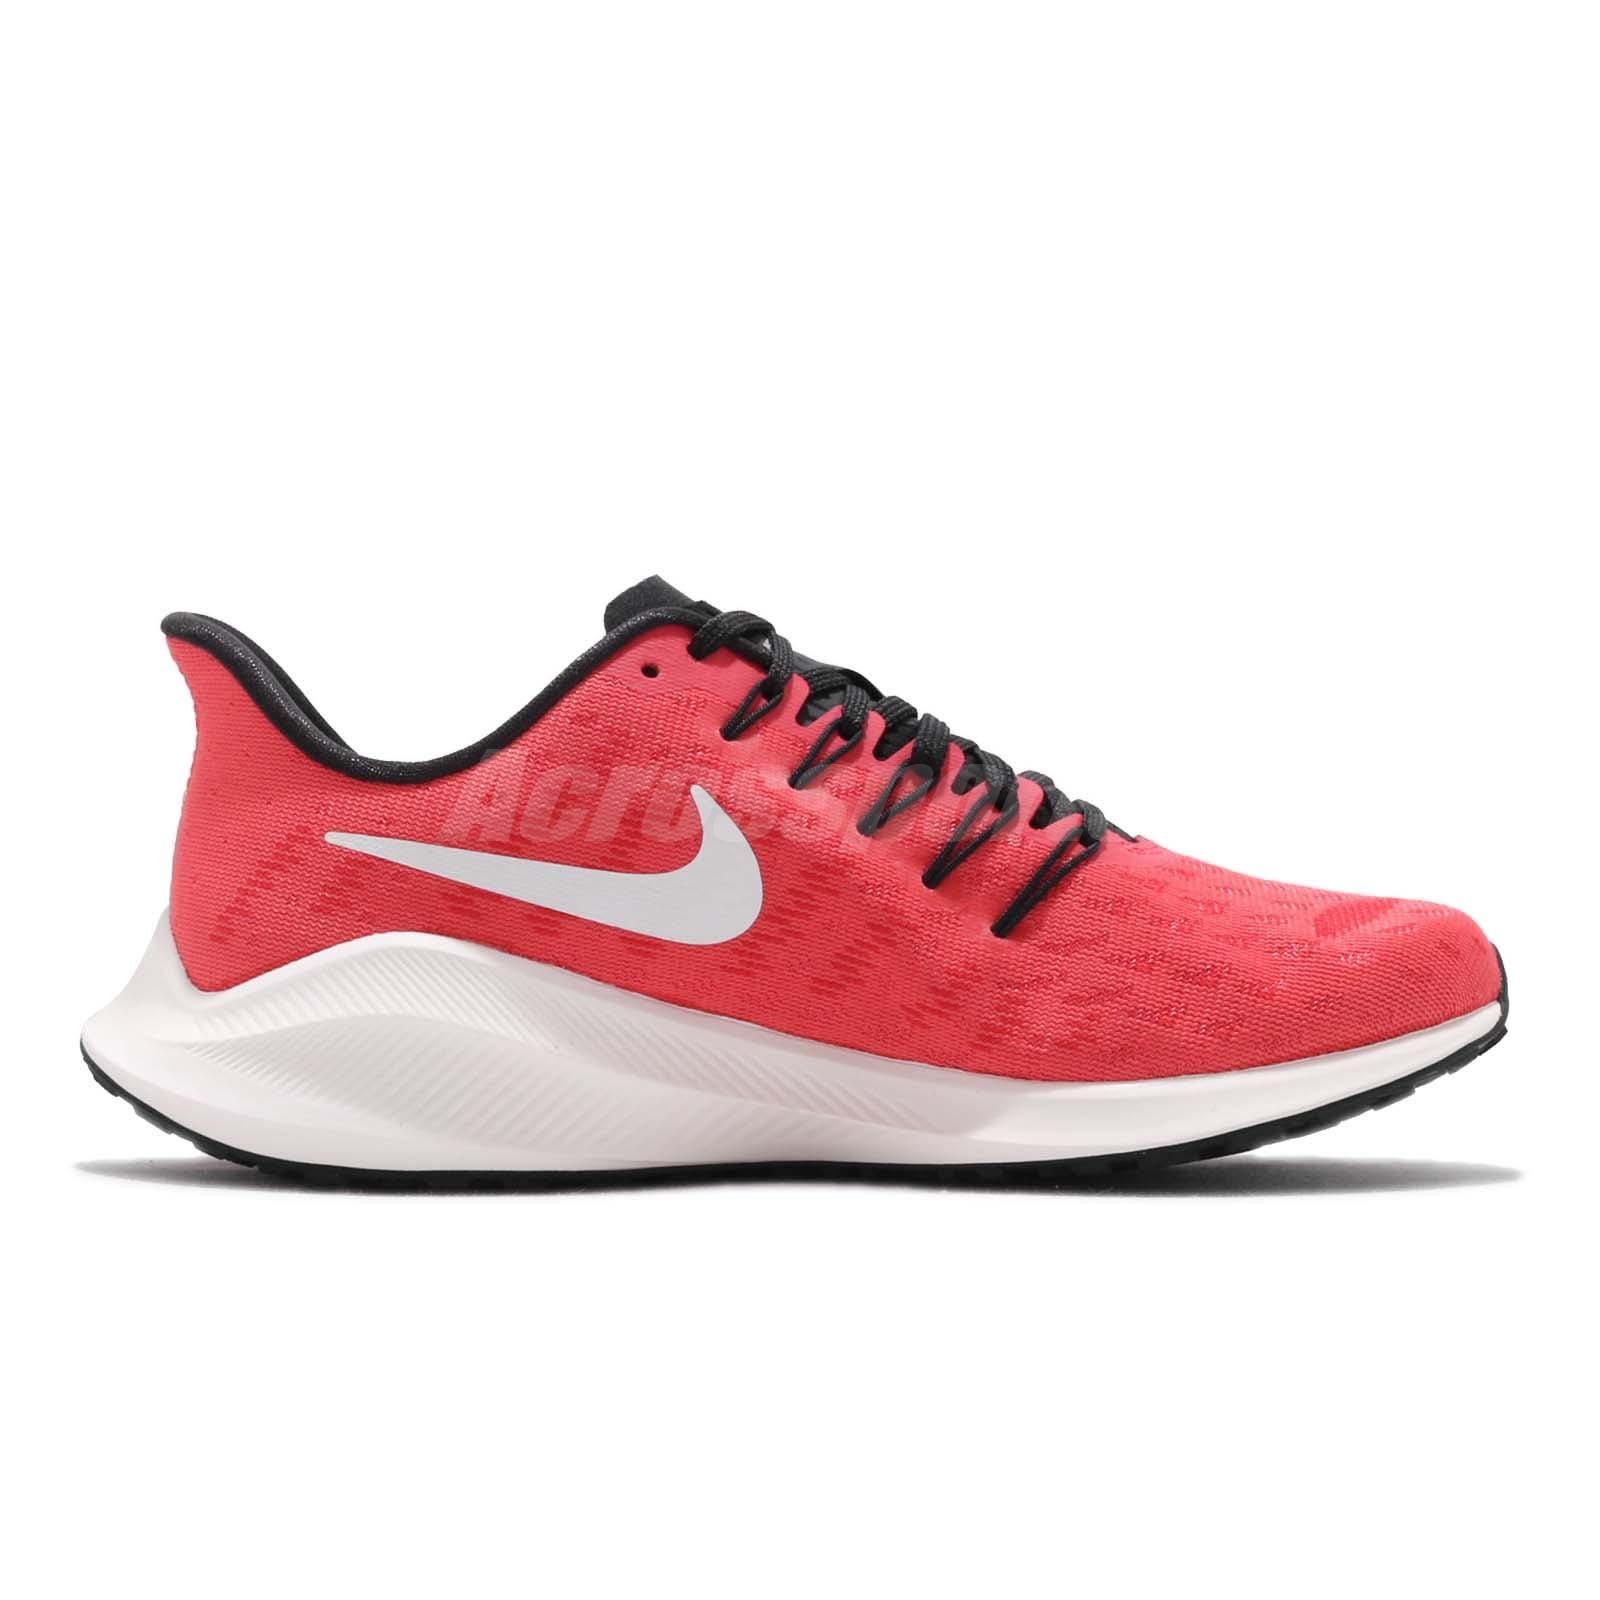 1ce78b7c91f4 Nike Wmns Air Zoom Vomero 14 Ember Glow Red Sail Womens Running ...